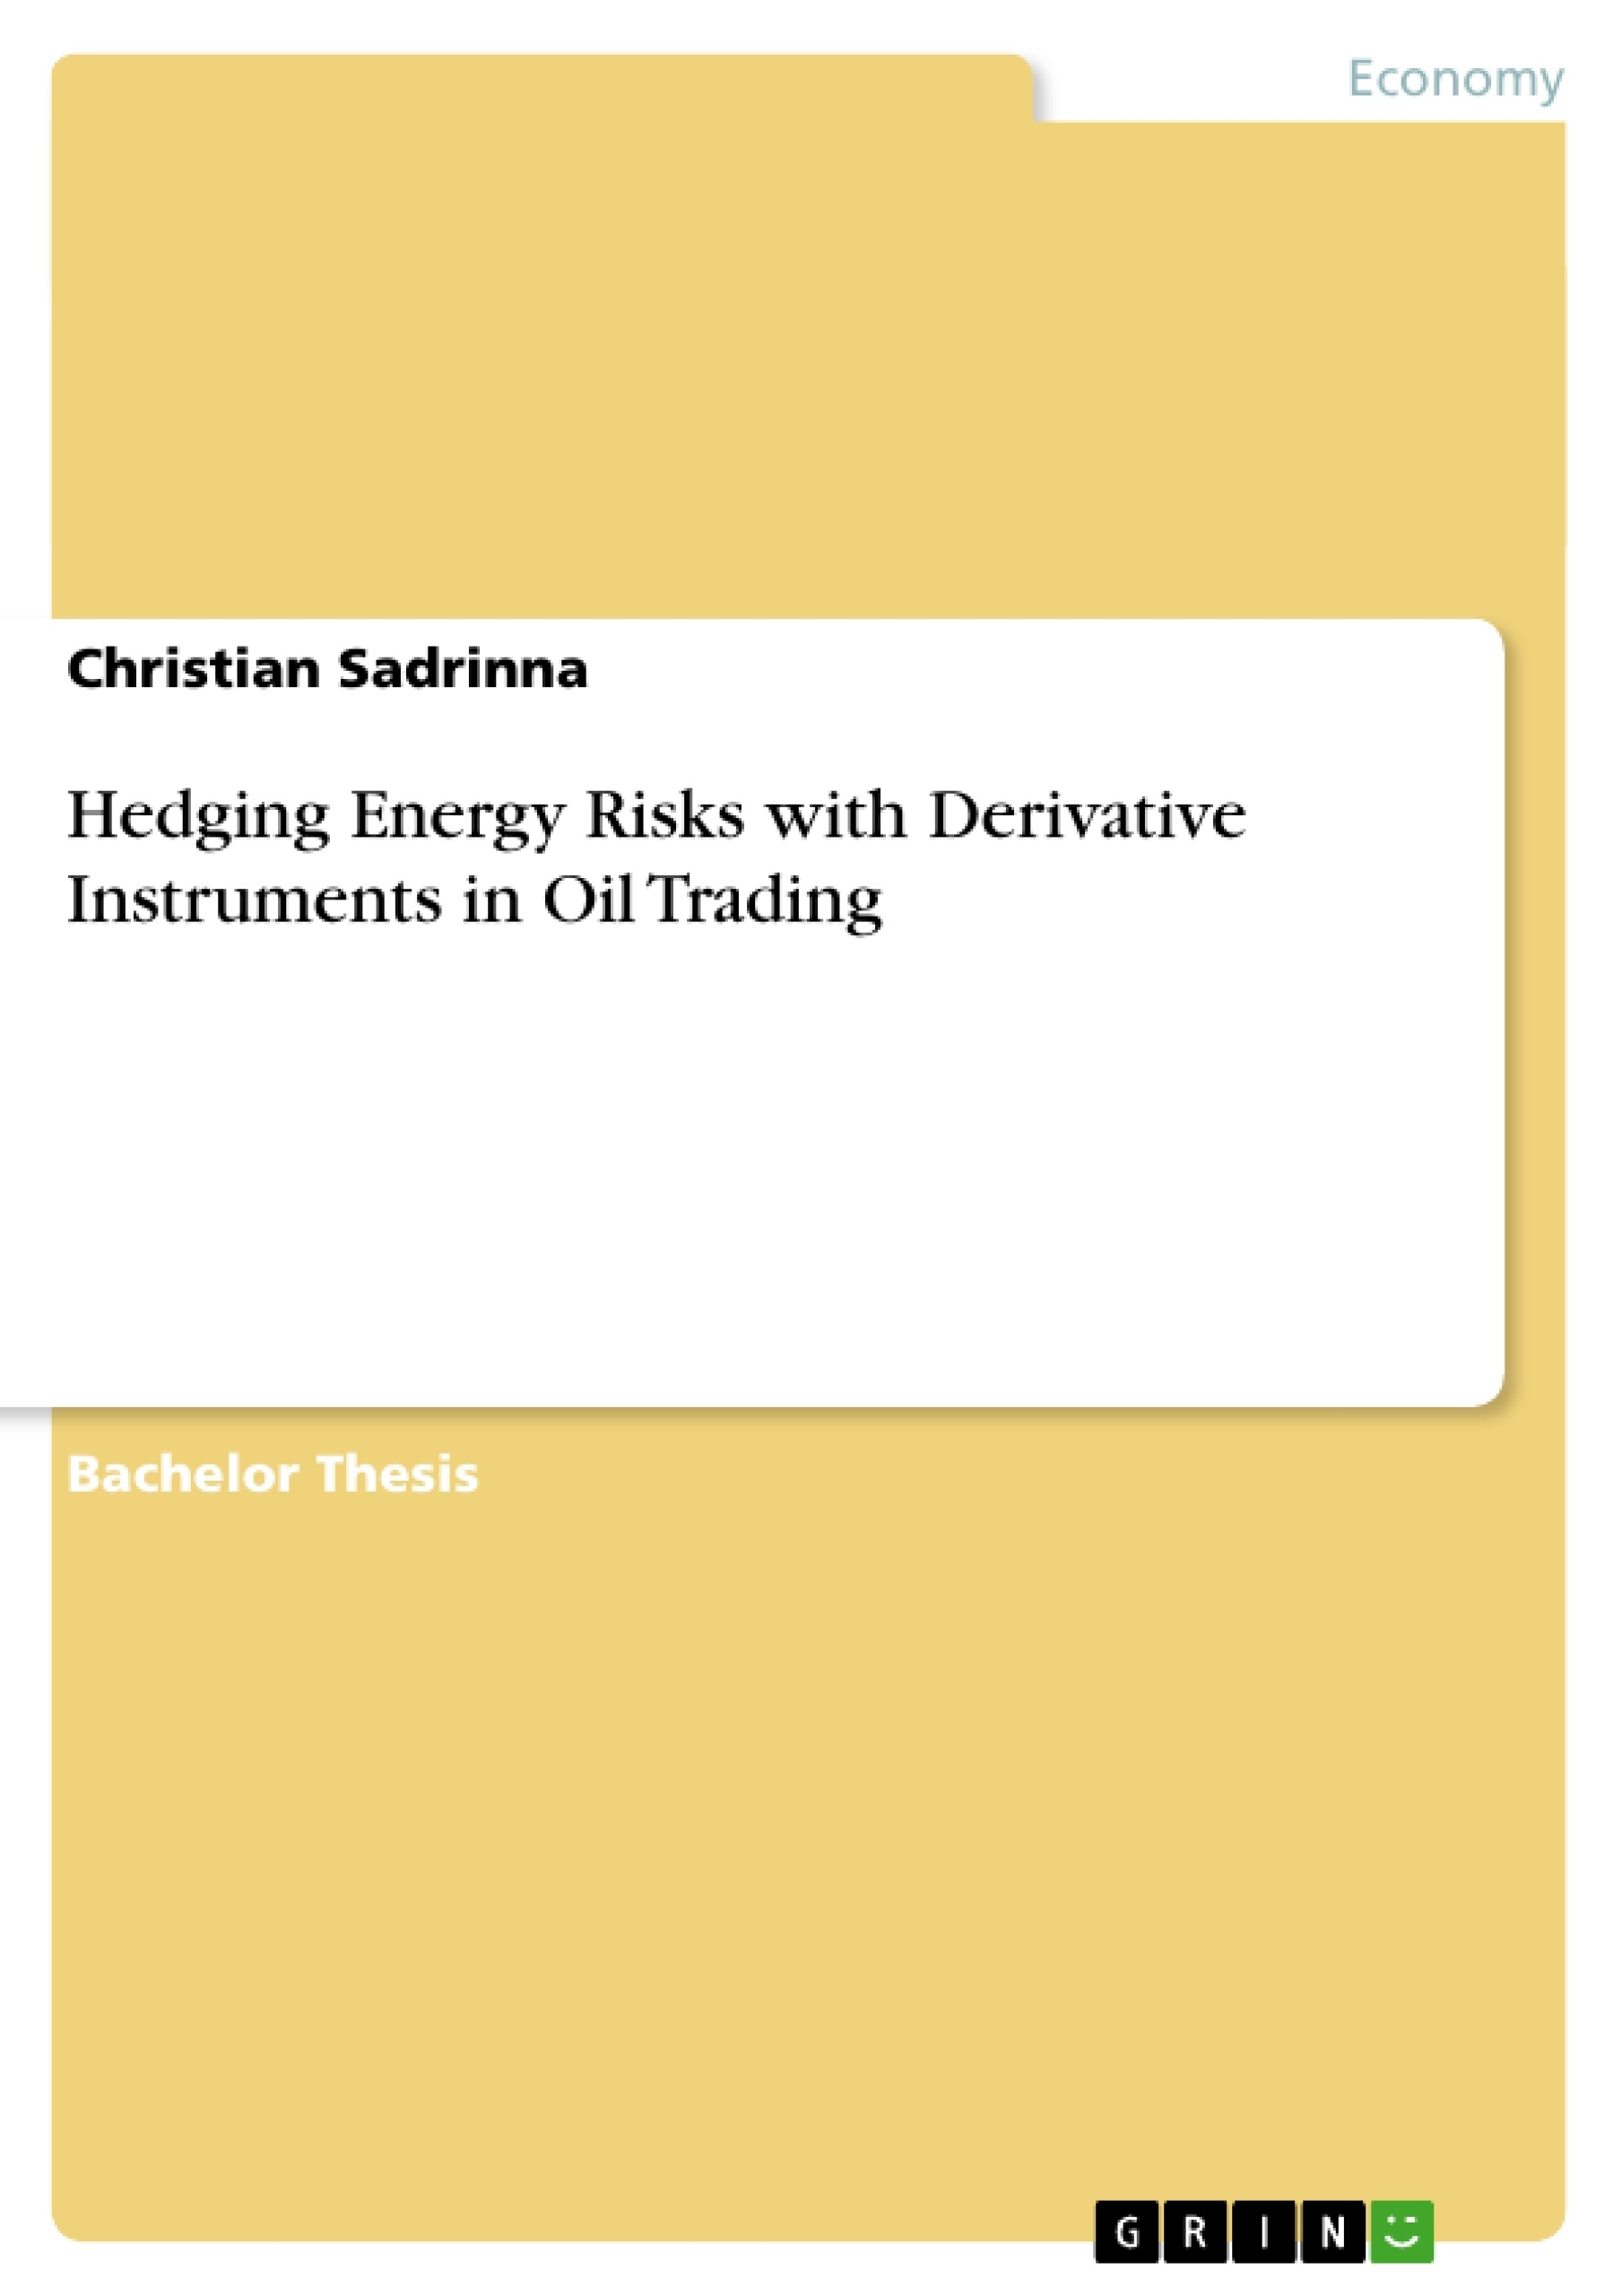 Title: Hedging Energy Risks with Derivative Instruments in Oil Trading